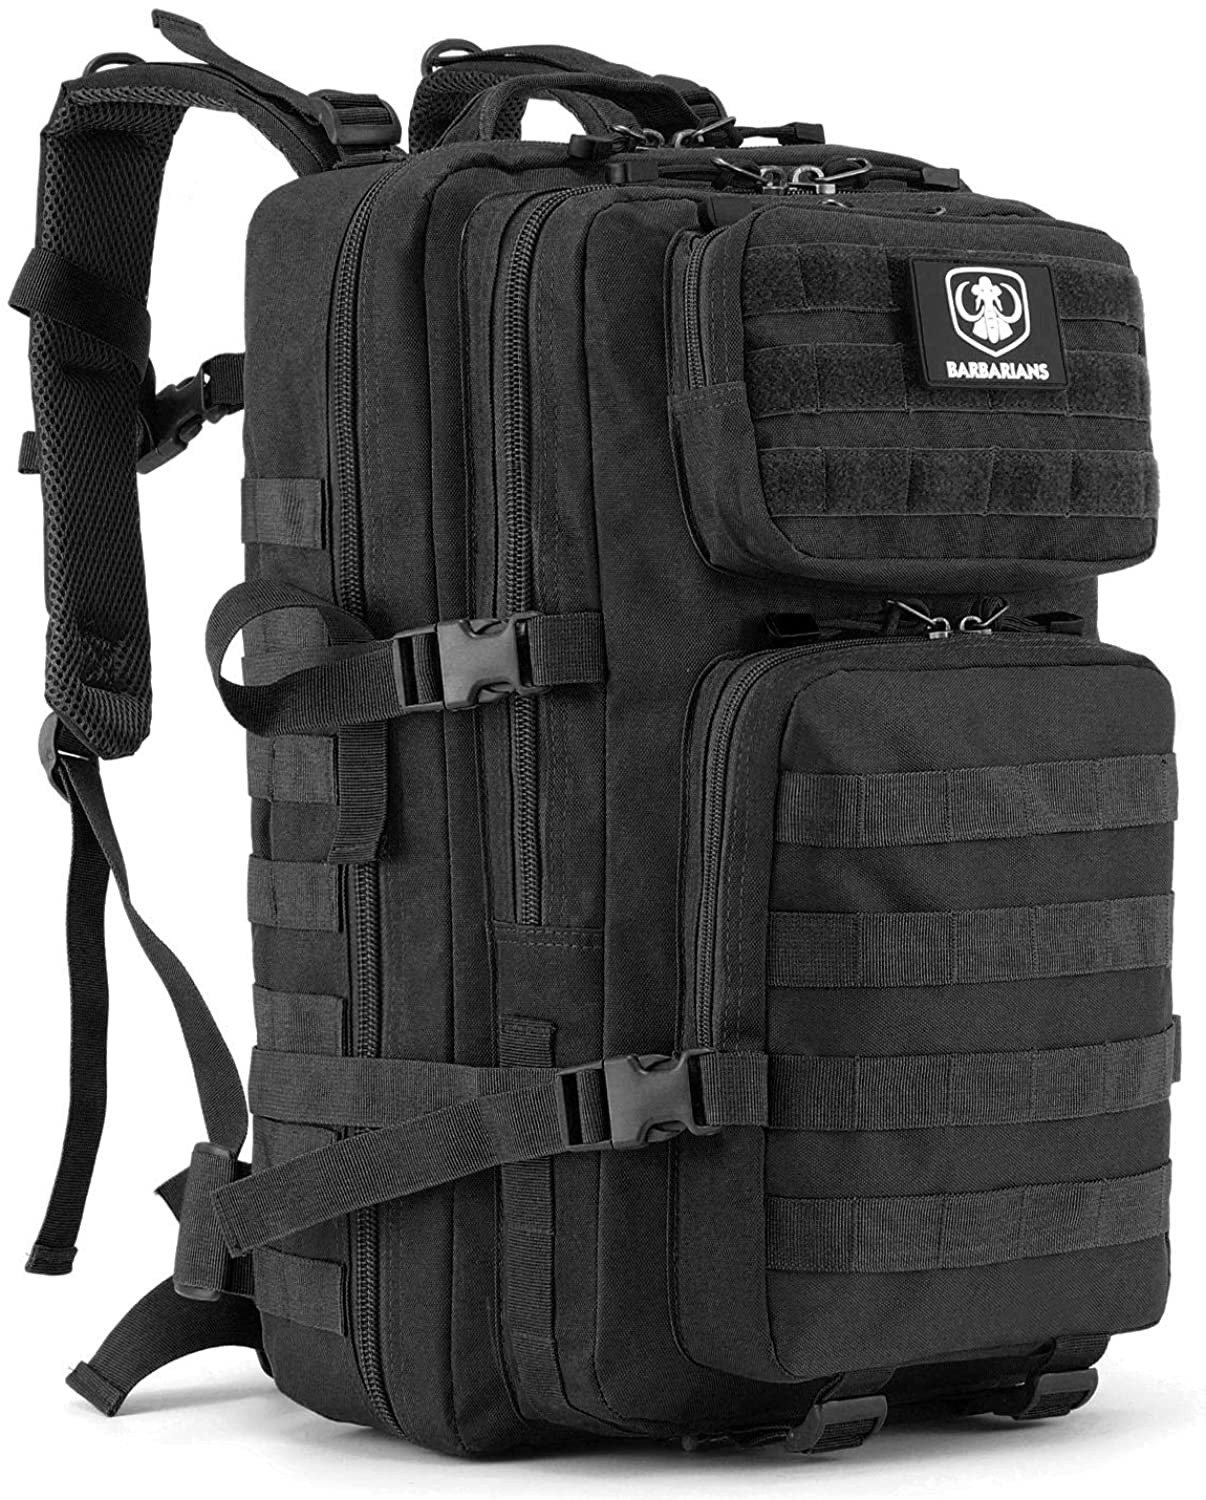 Barbarians Upgraded 35L Tactical Molle Backpack, Military Assault Pack Rucksack for Outdoor Hiking Camping Trekking Hunting